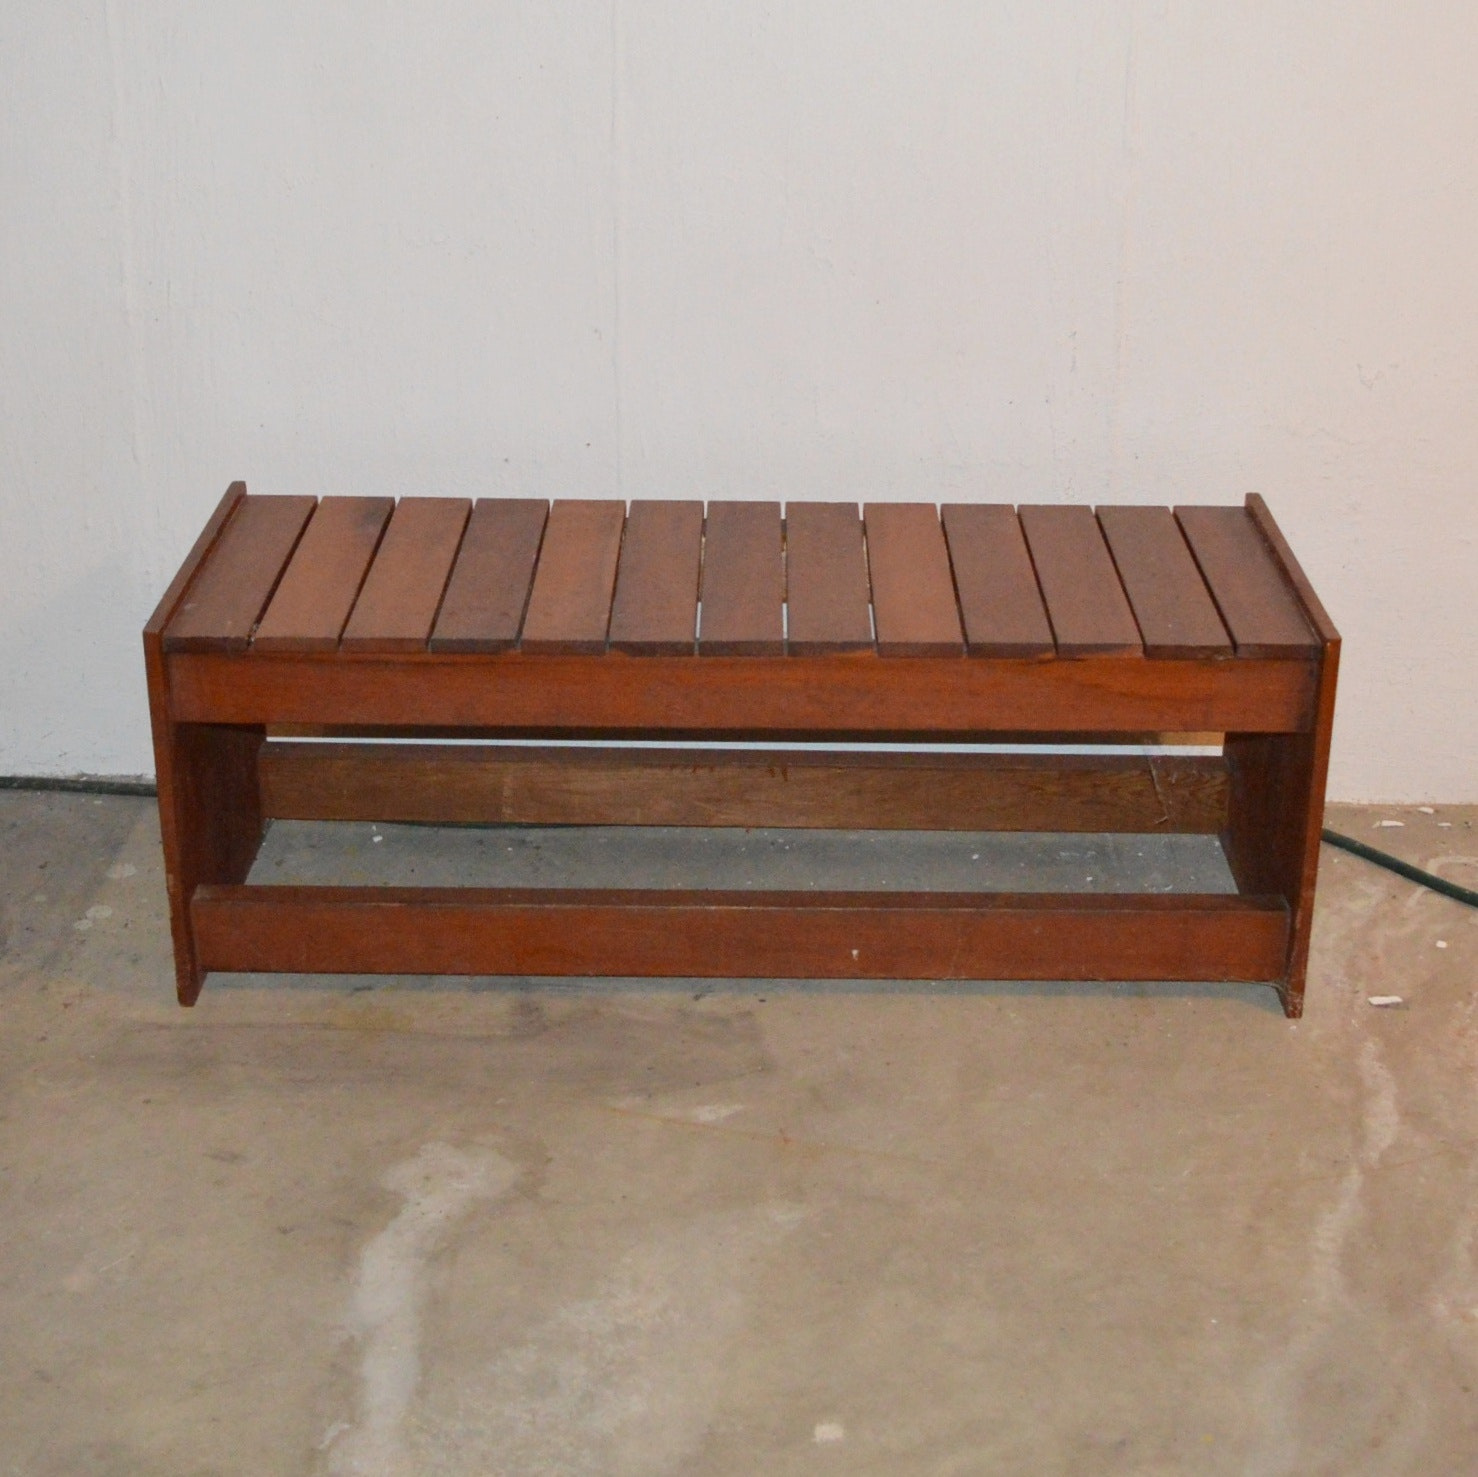 Wood Slatted Bench